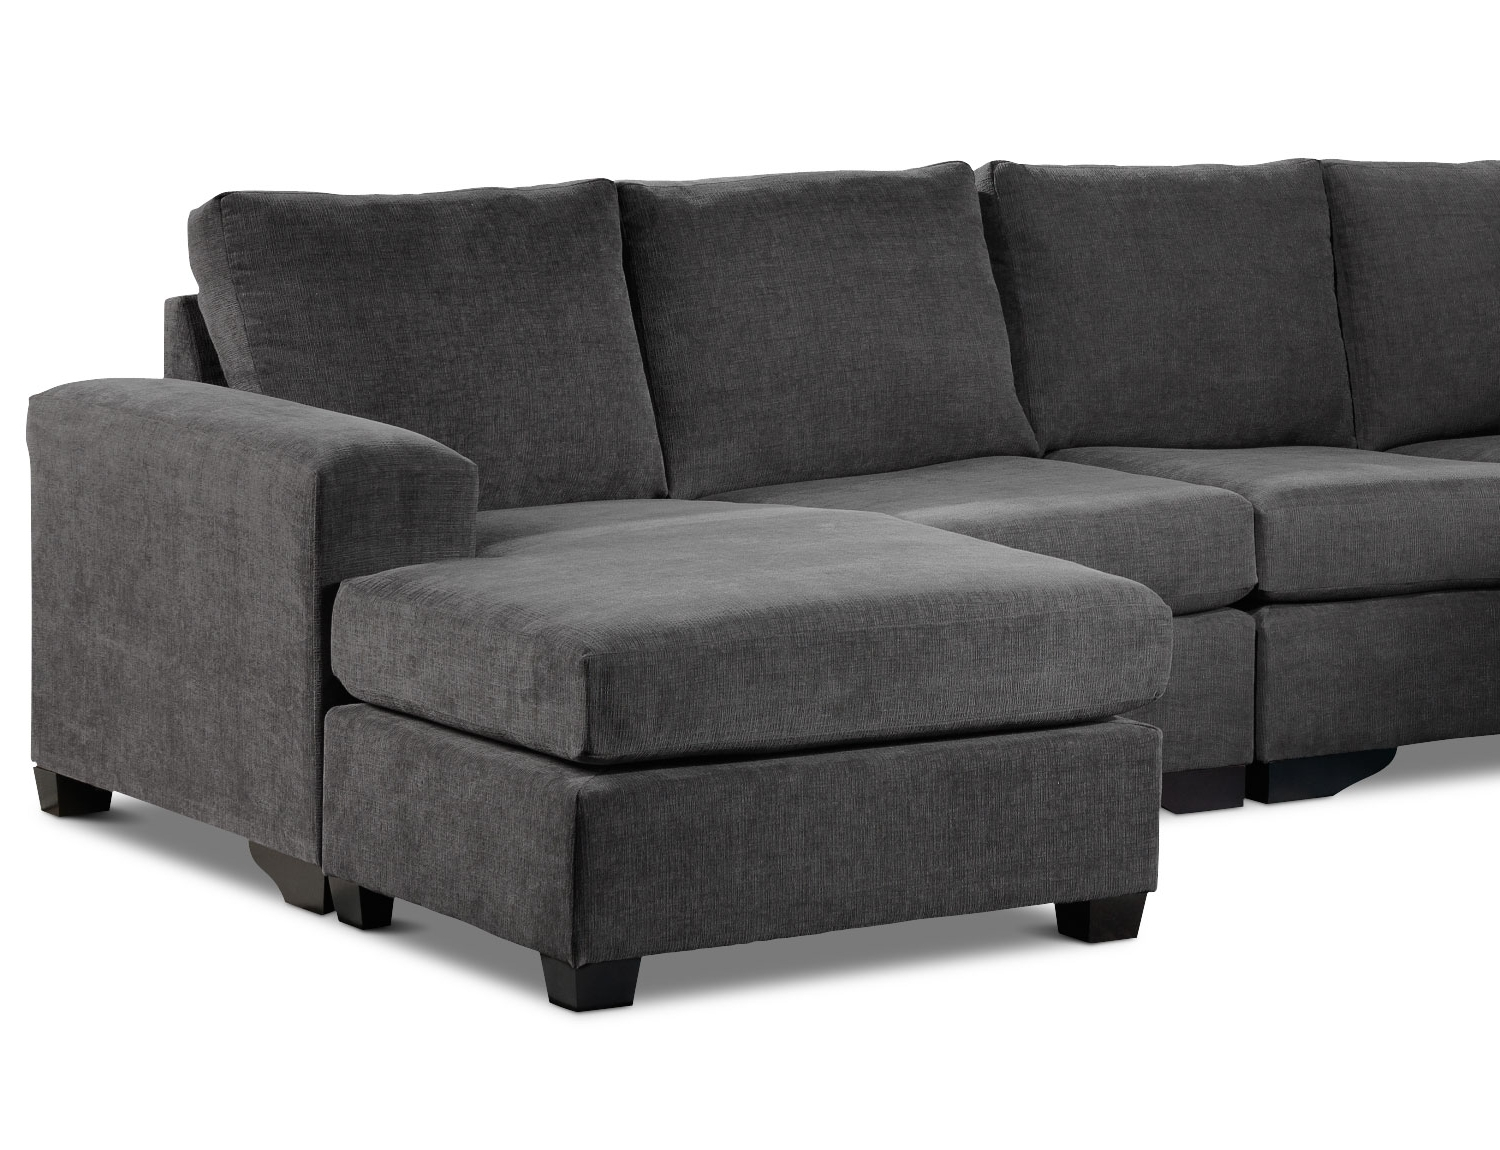 Sectional Sofas At Edmonton In Latest Danielle 3 Piece Sectional With Right Facing Corner Wedge – Grey (View 15 of 20)